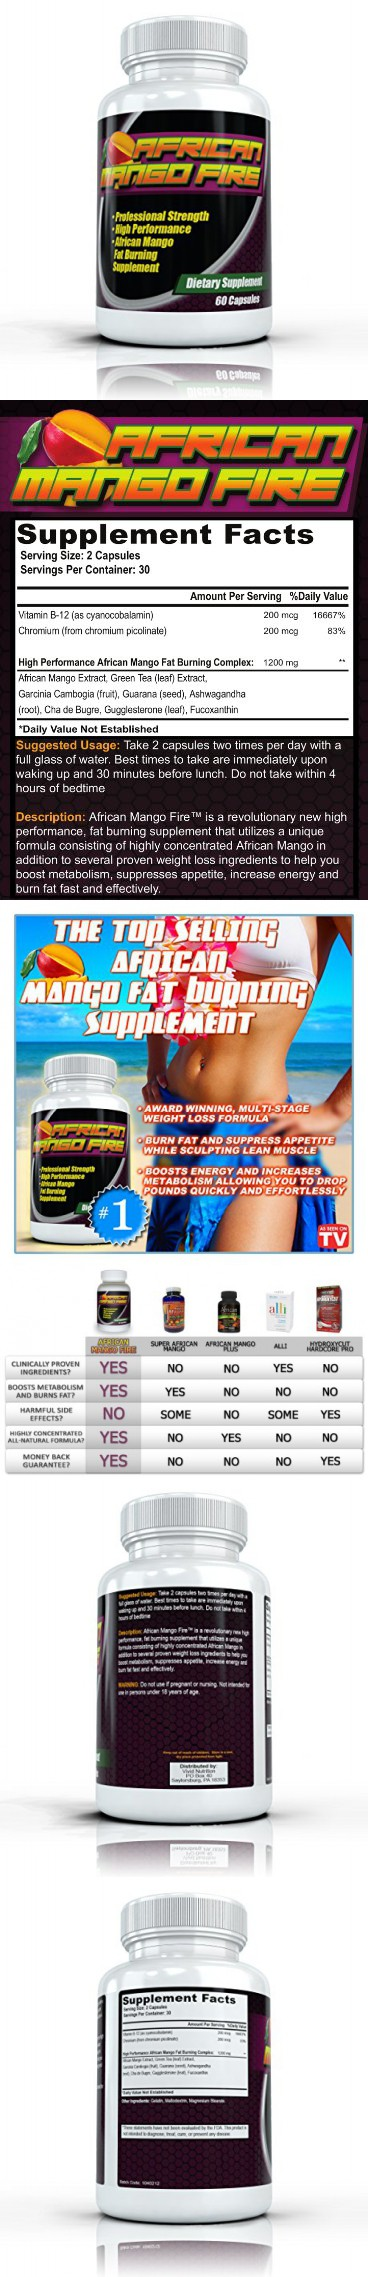 Supplements for weight loss fast forum photo 2